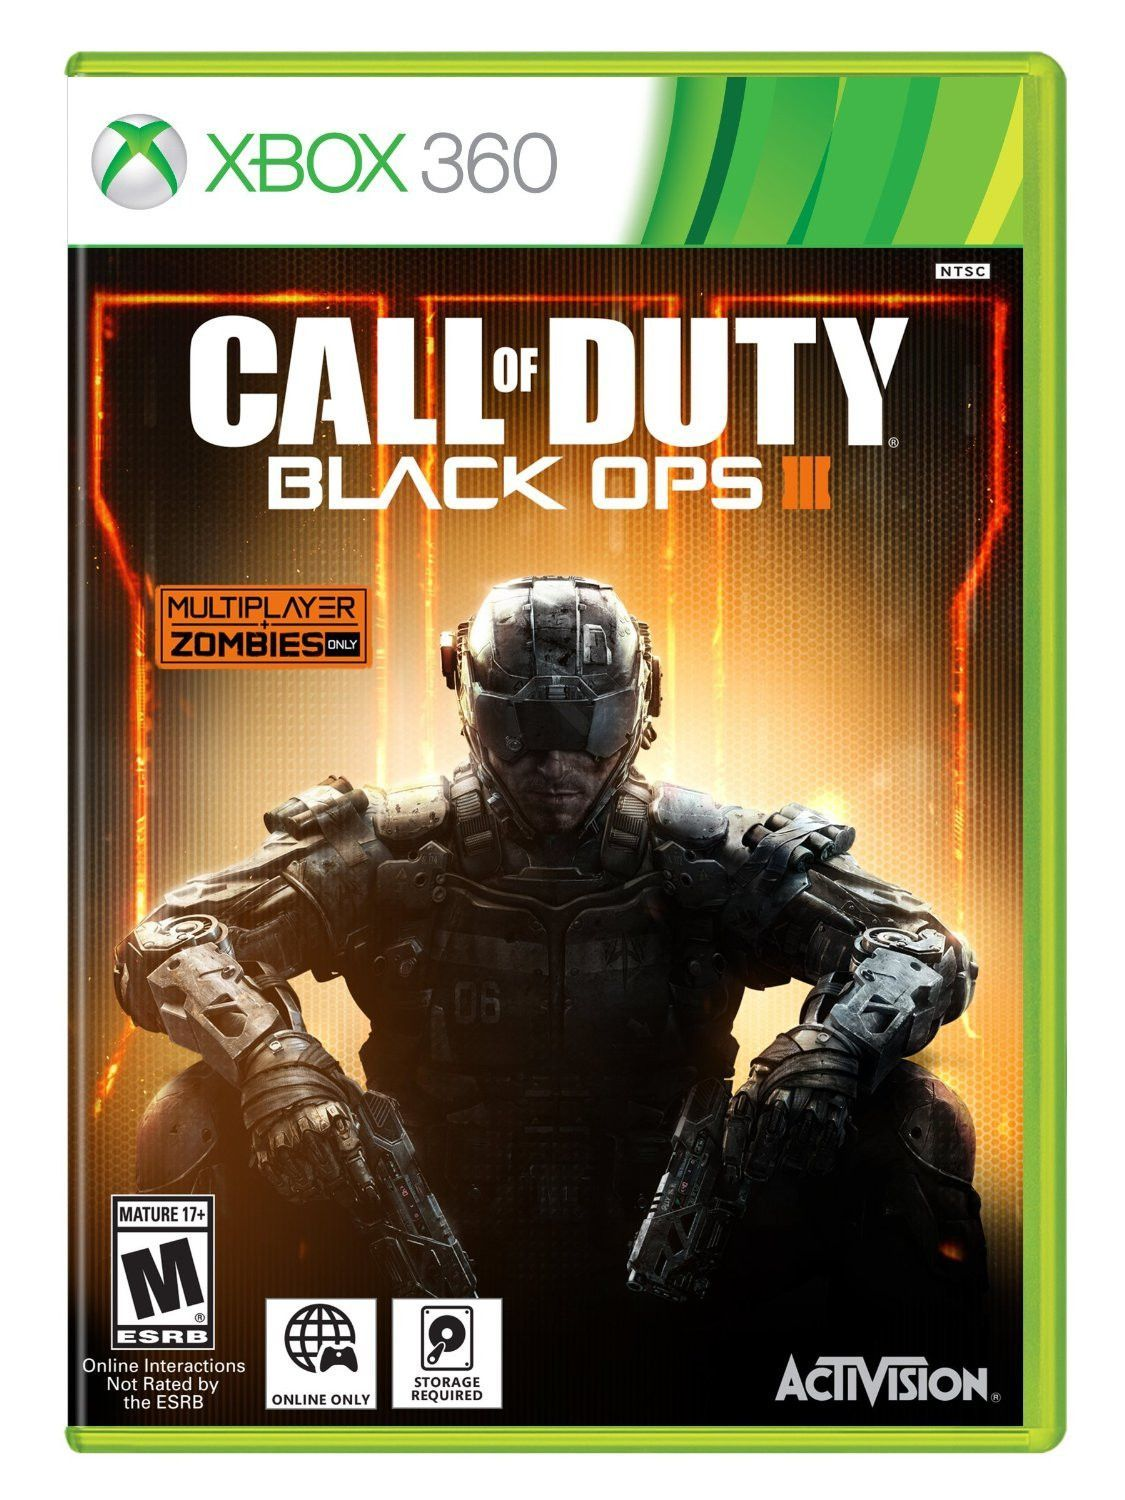 Call of Duty: Black Ops III | Black ops, Video games and Gaming